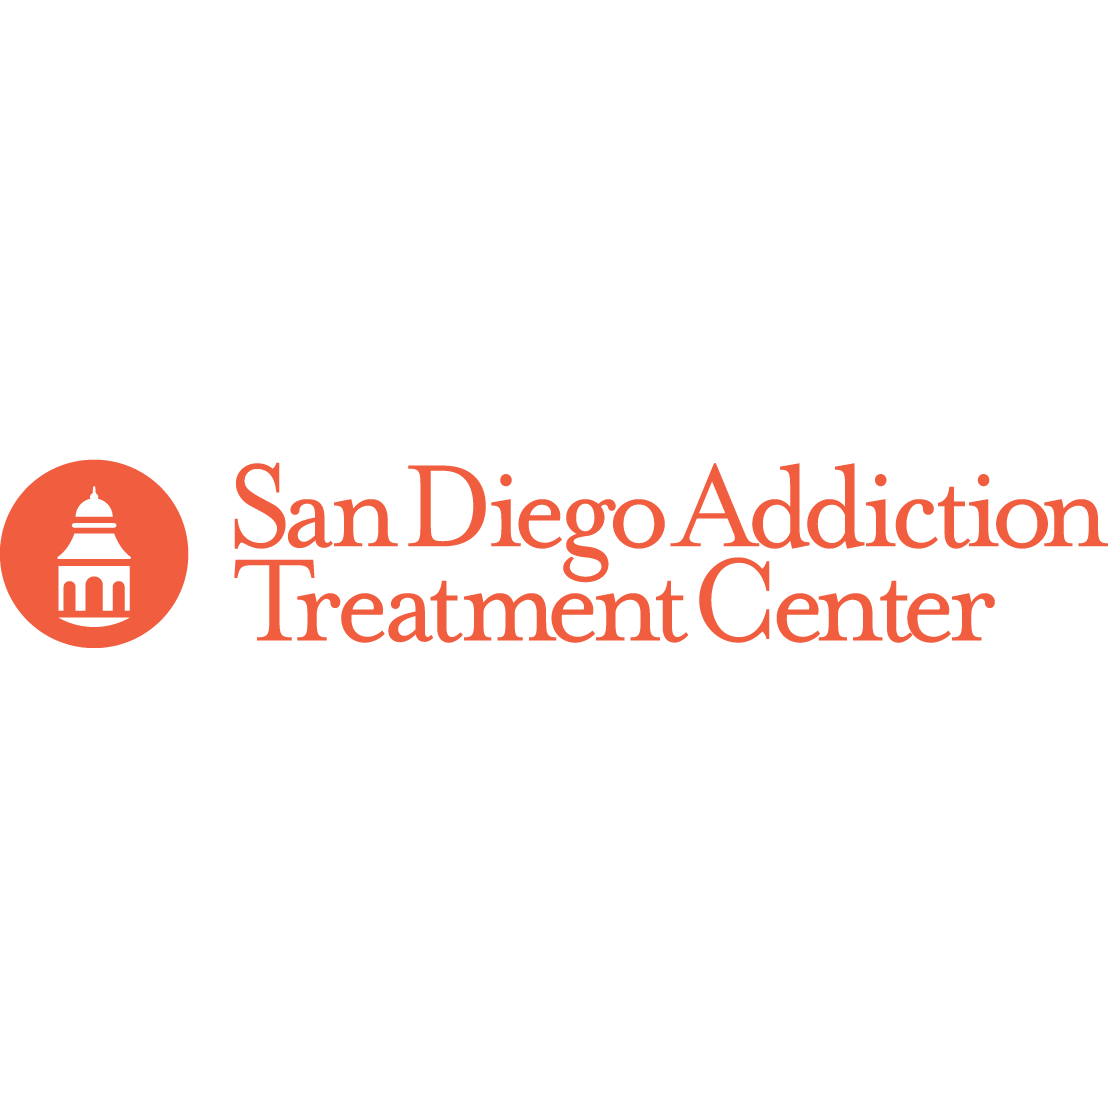 San Diego Addiction Treatment Center